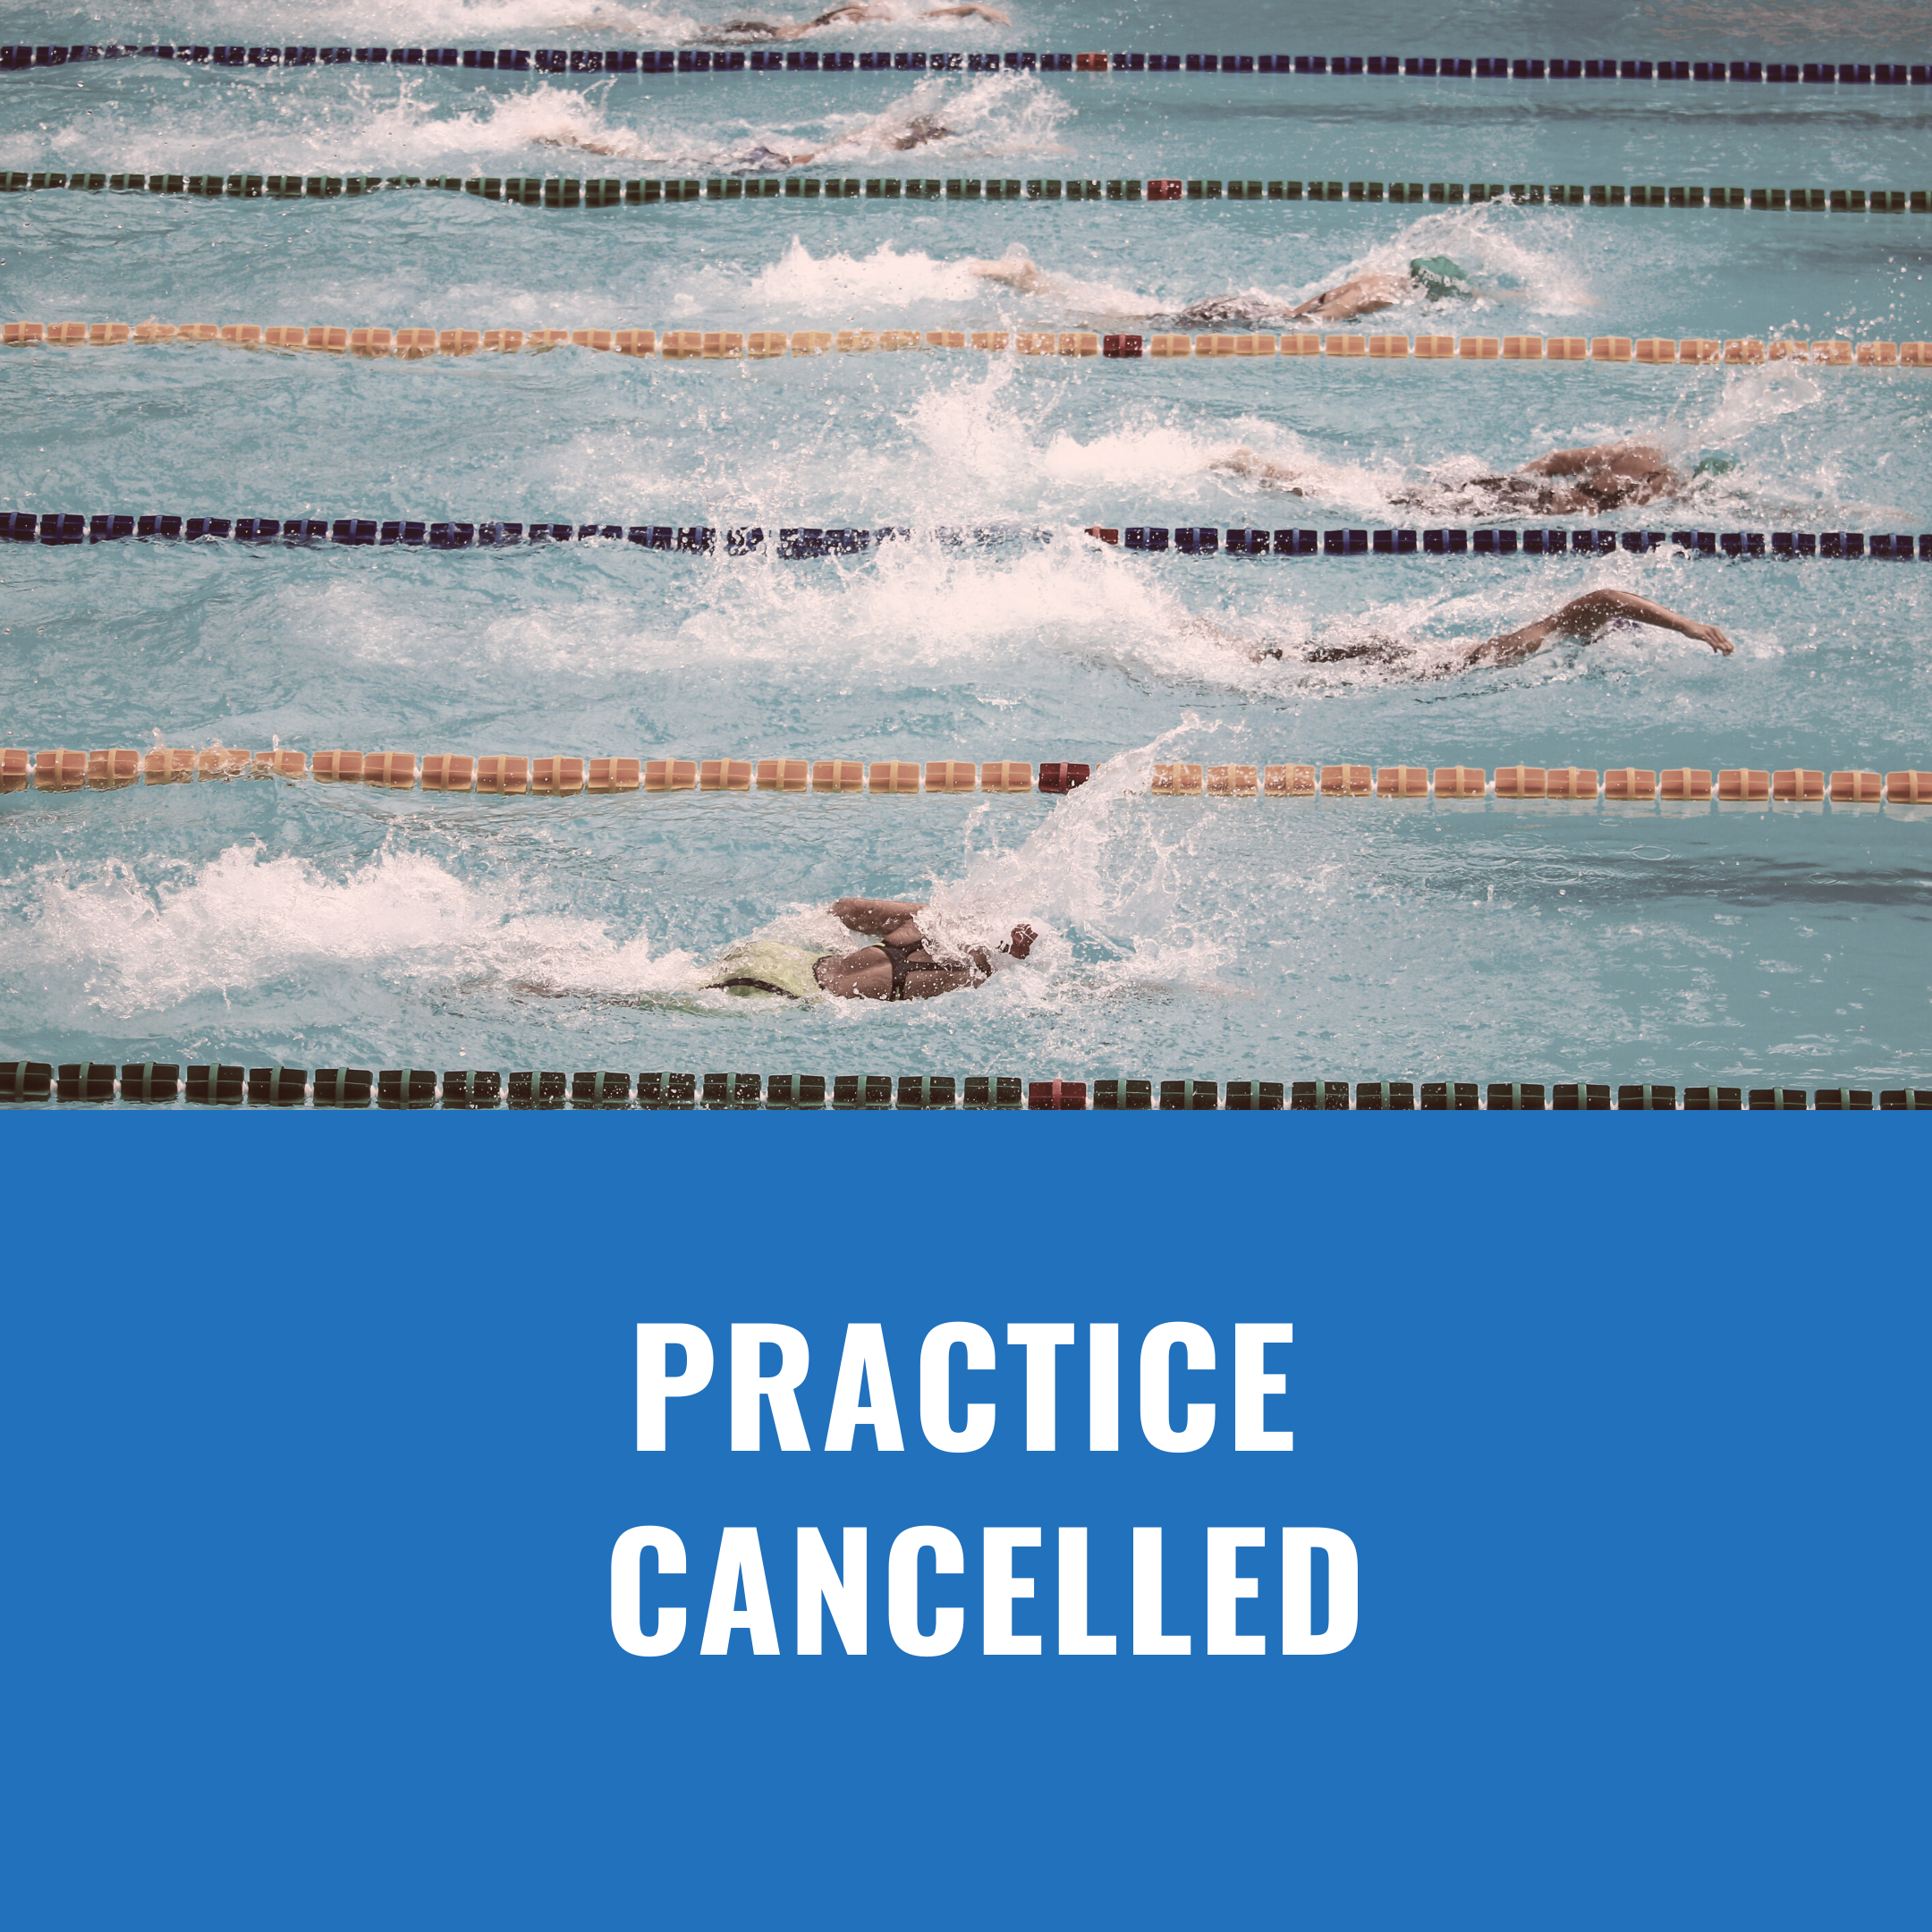 Practice Cancelled